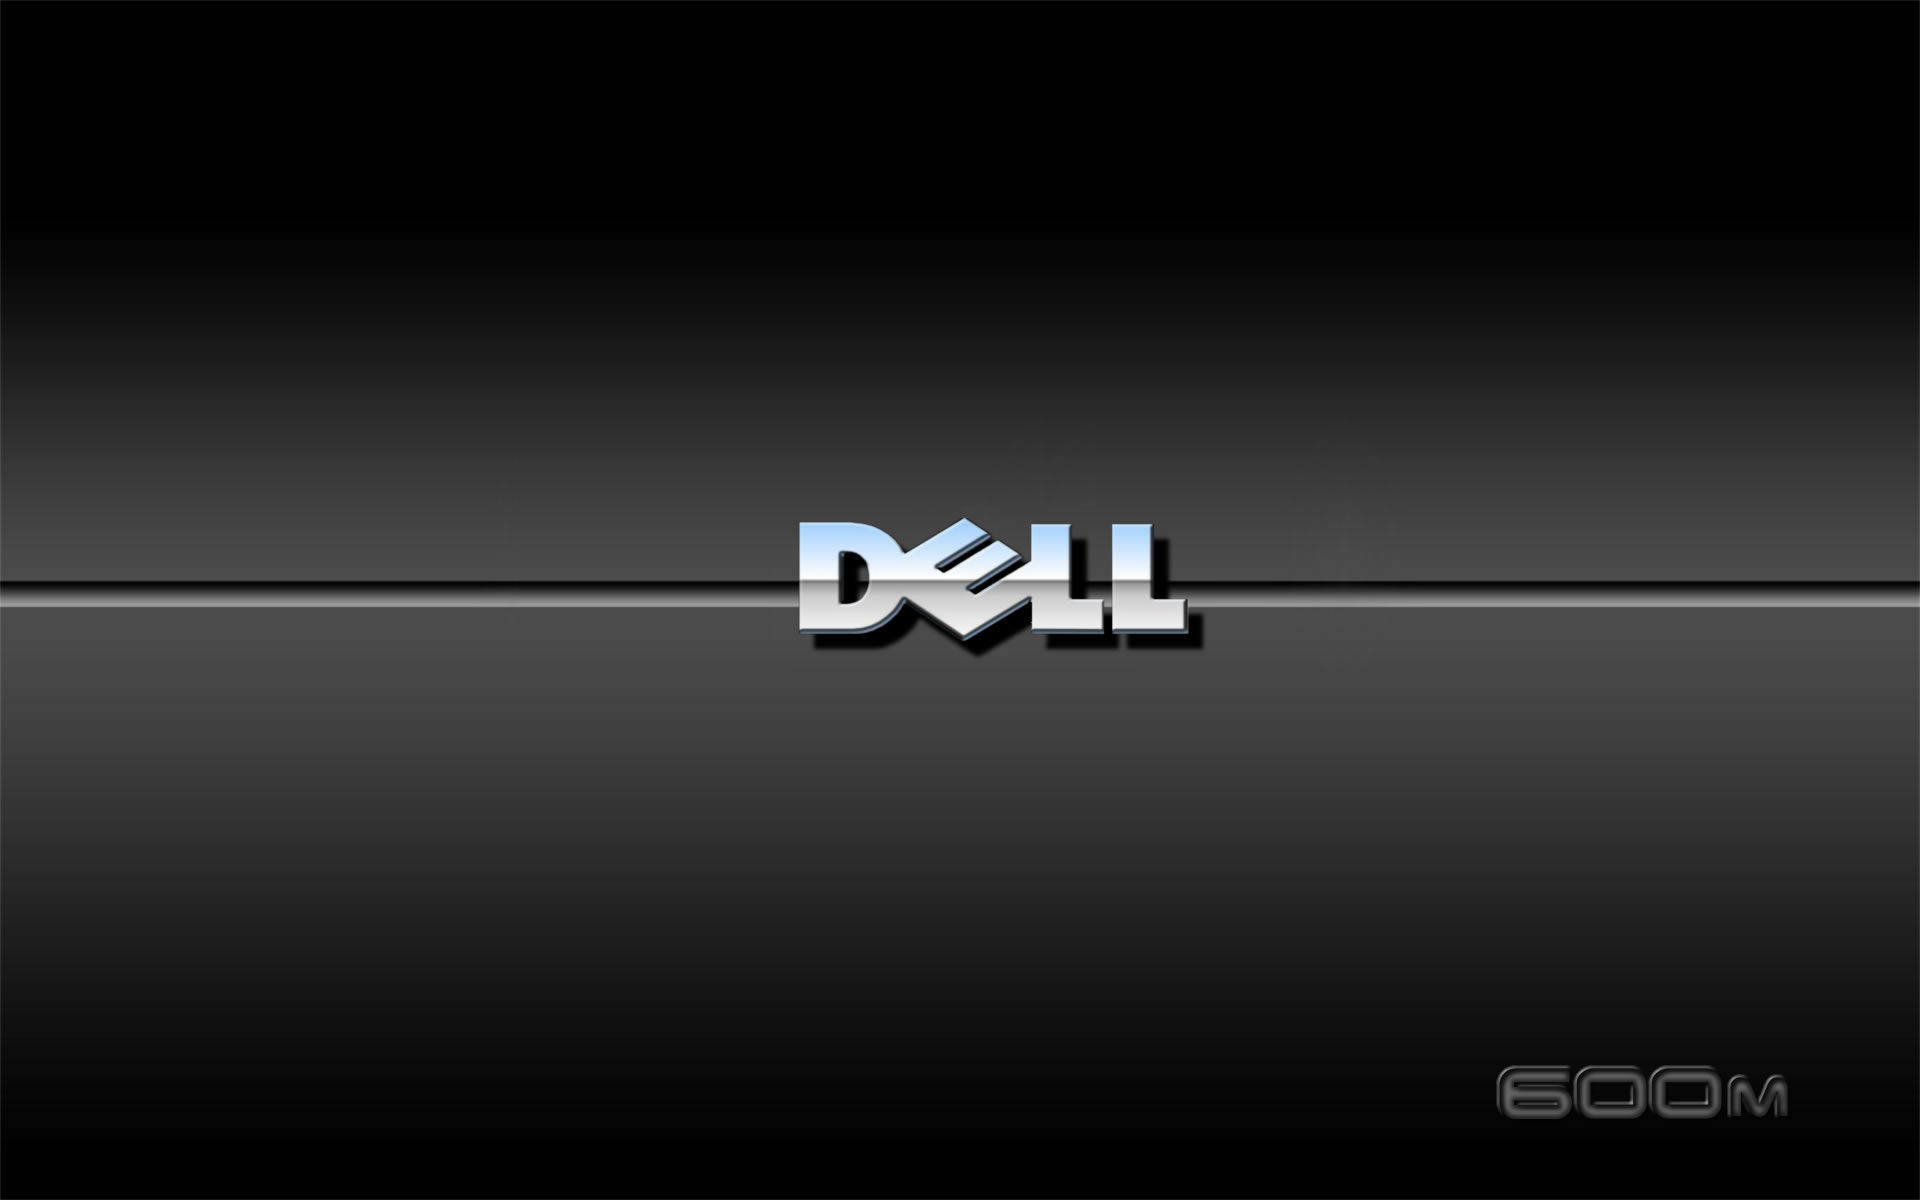 Dell Wallpaper Hd   1479491 1920x1200